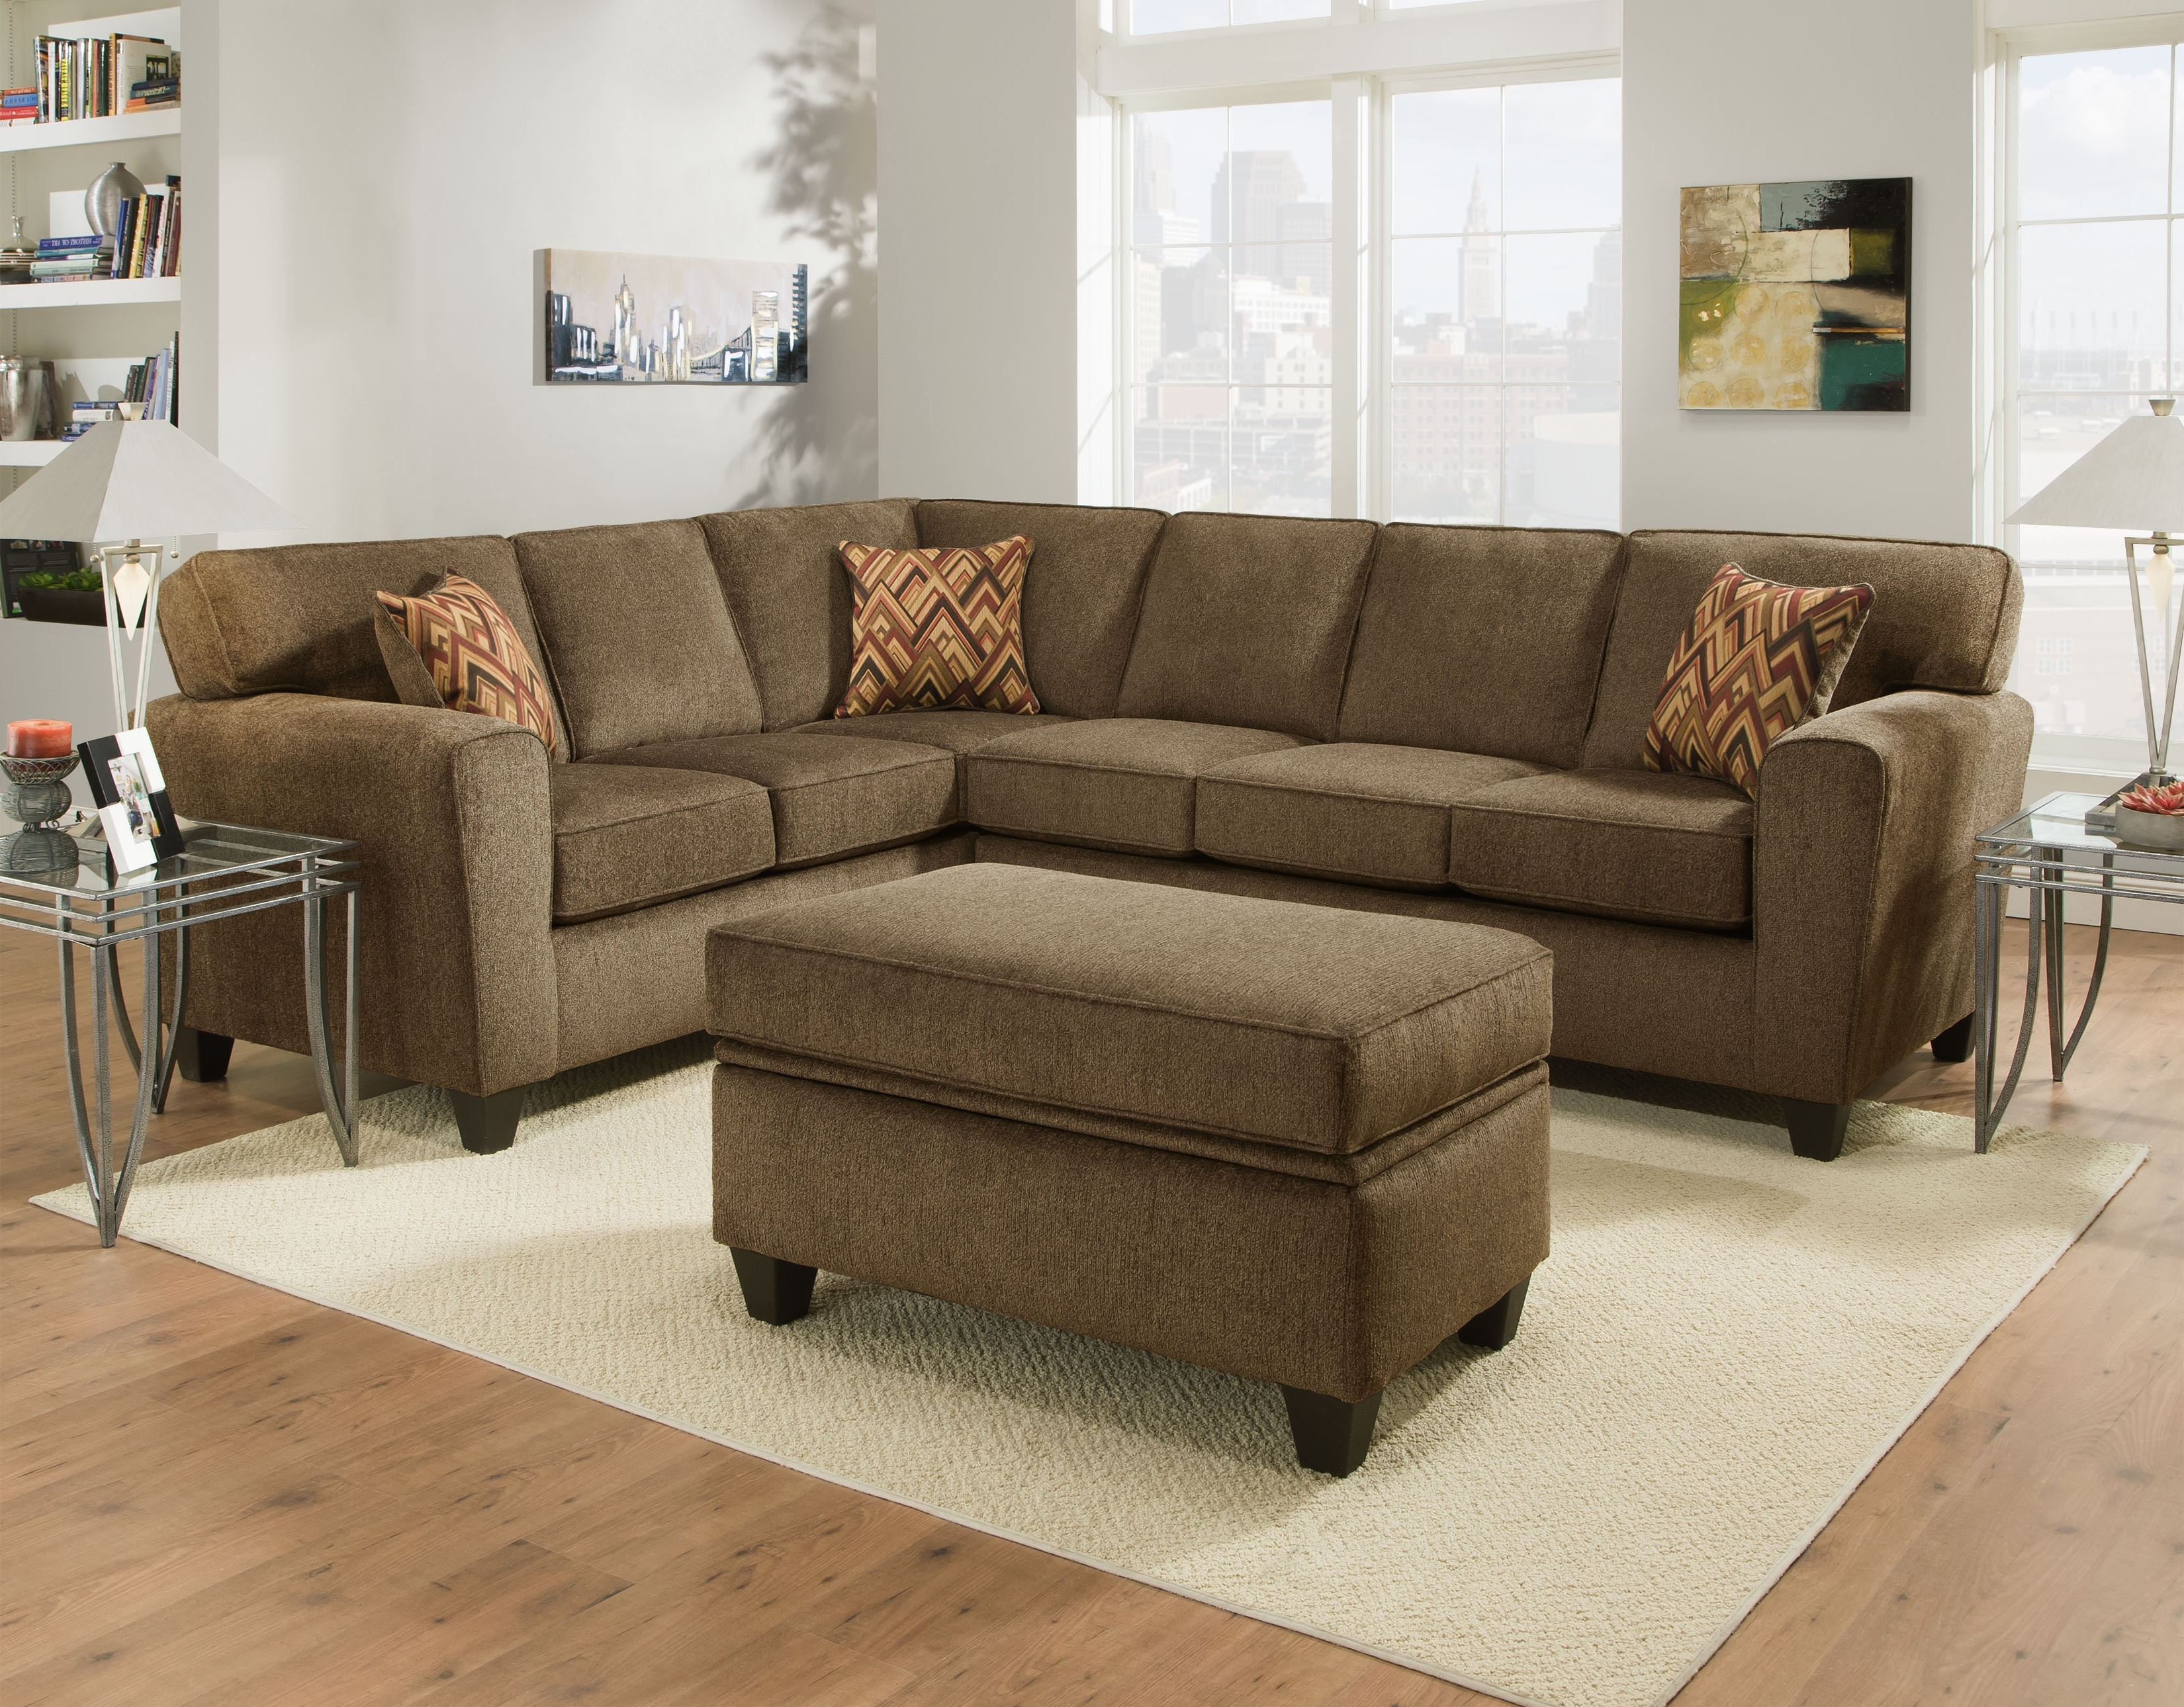 Janesville Wi Sectional Sofas In Well Known Living Room – Crazy Joe's Best Deal Furniture (Gallery 2 of 20)